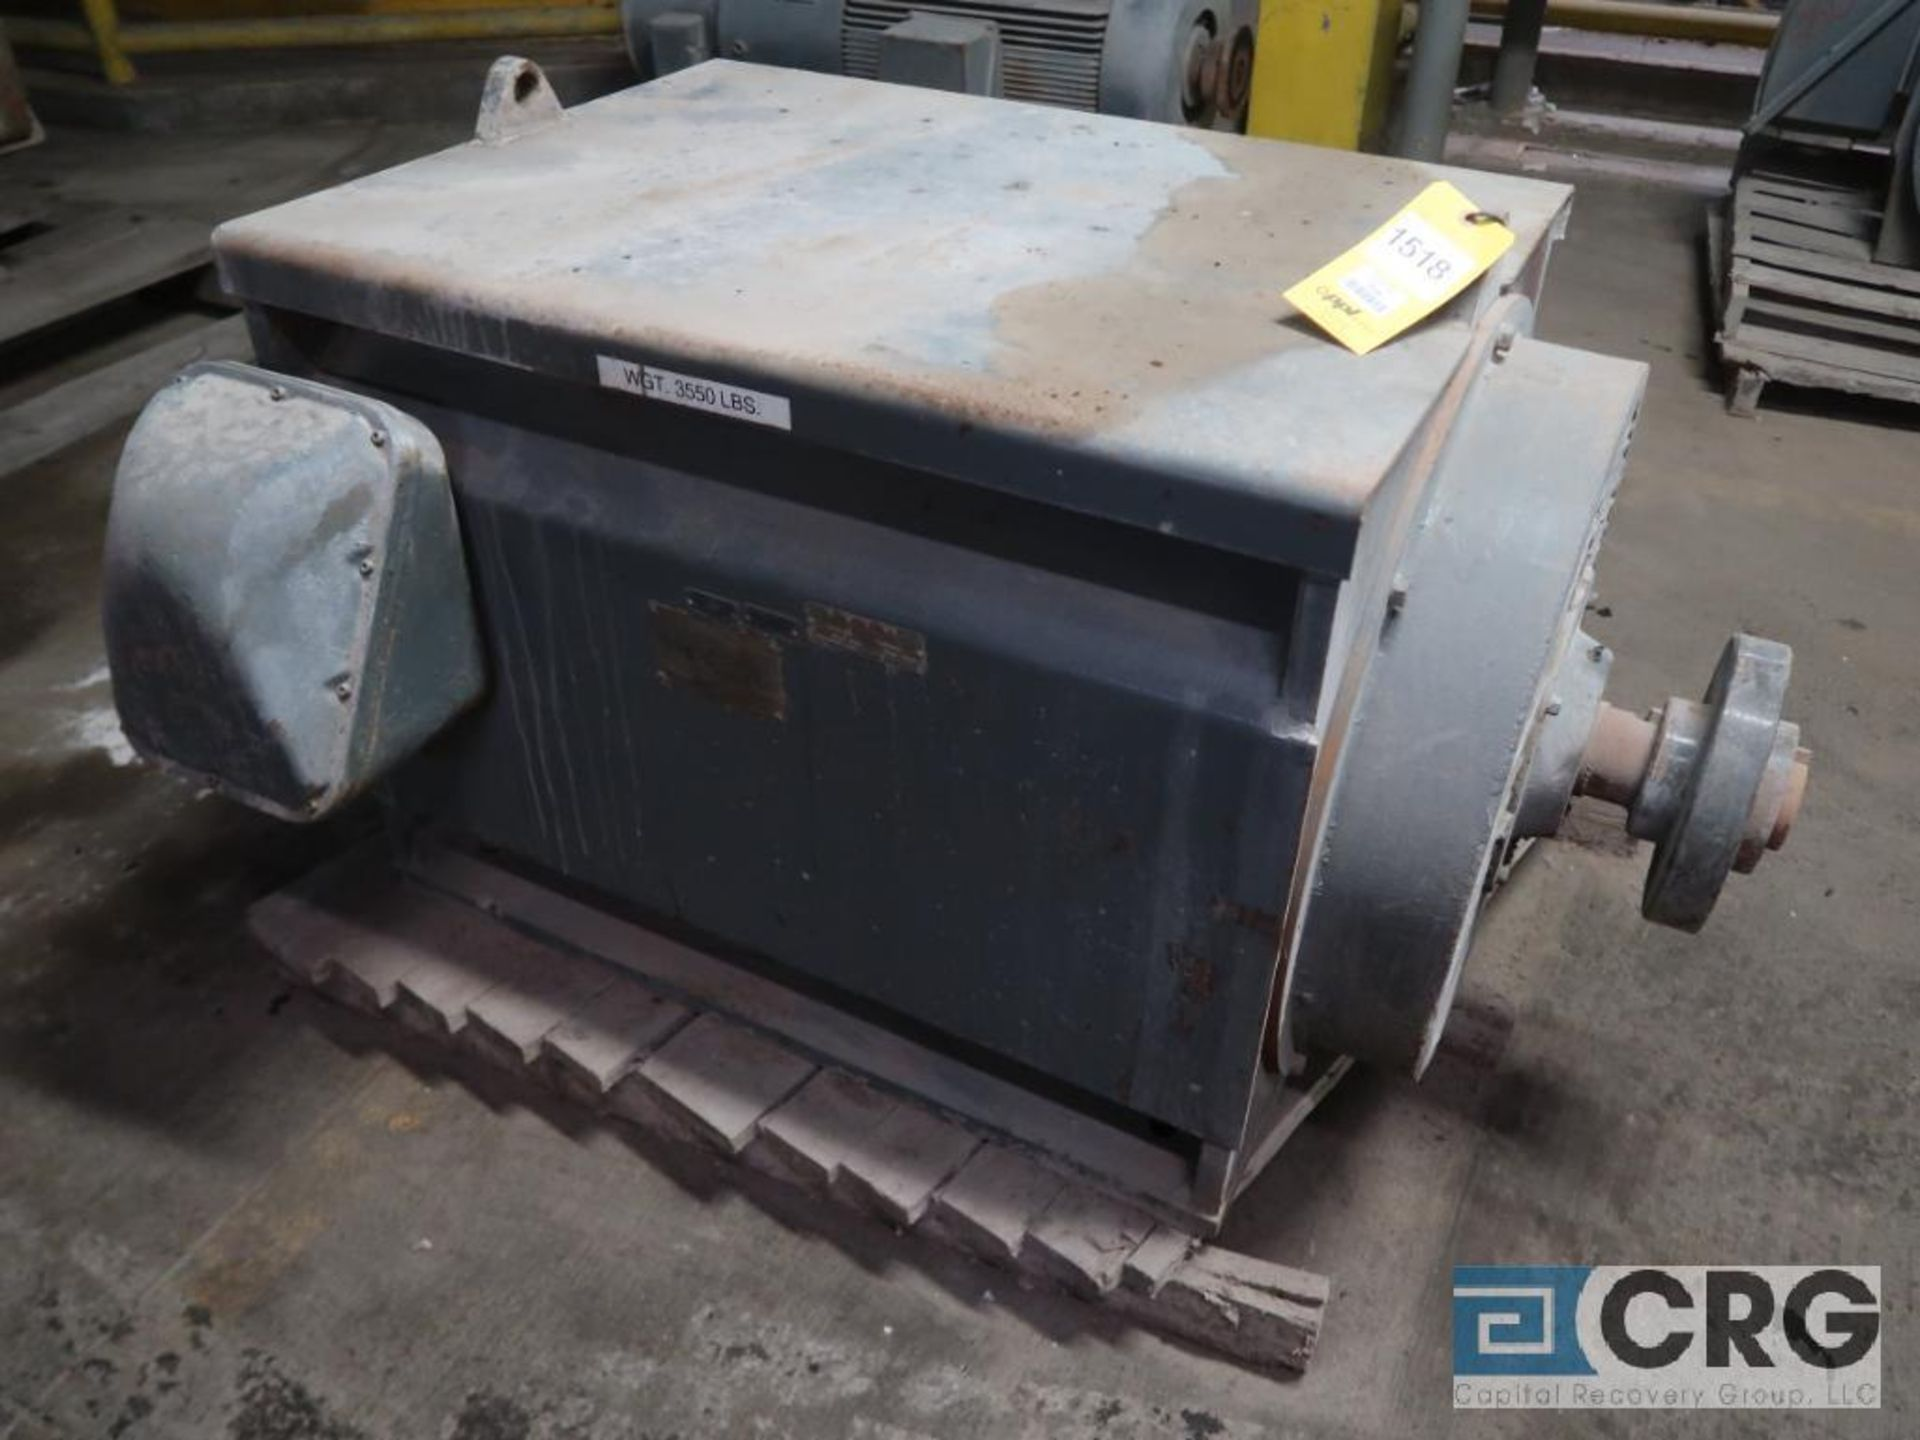 Ideal Electric motor, 350 HP, 1,180 RPM, 2,300 volts, frame 7589, equipment #E04259 (496 Dock Area)